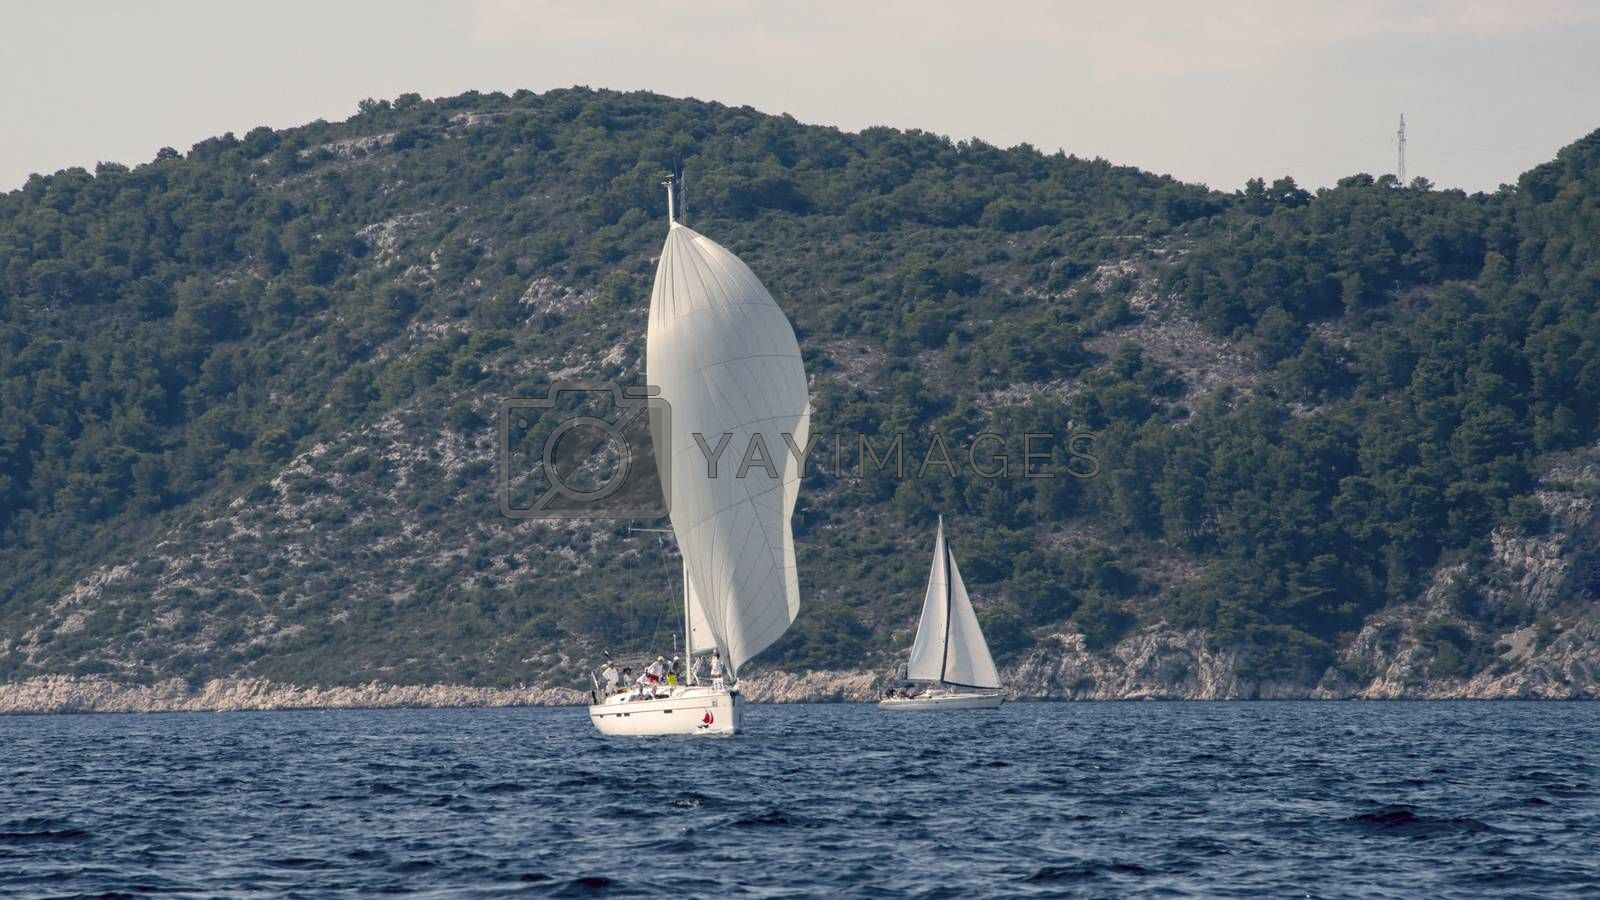 Croatia, Hvar - June 2018: Sailing boats in the waters around the hills at Hvar Old town